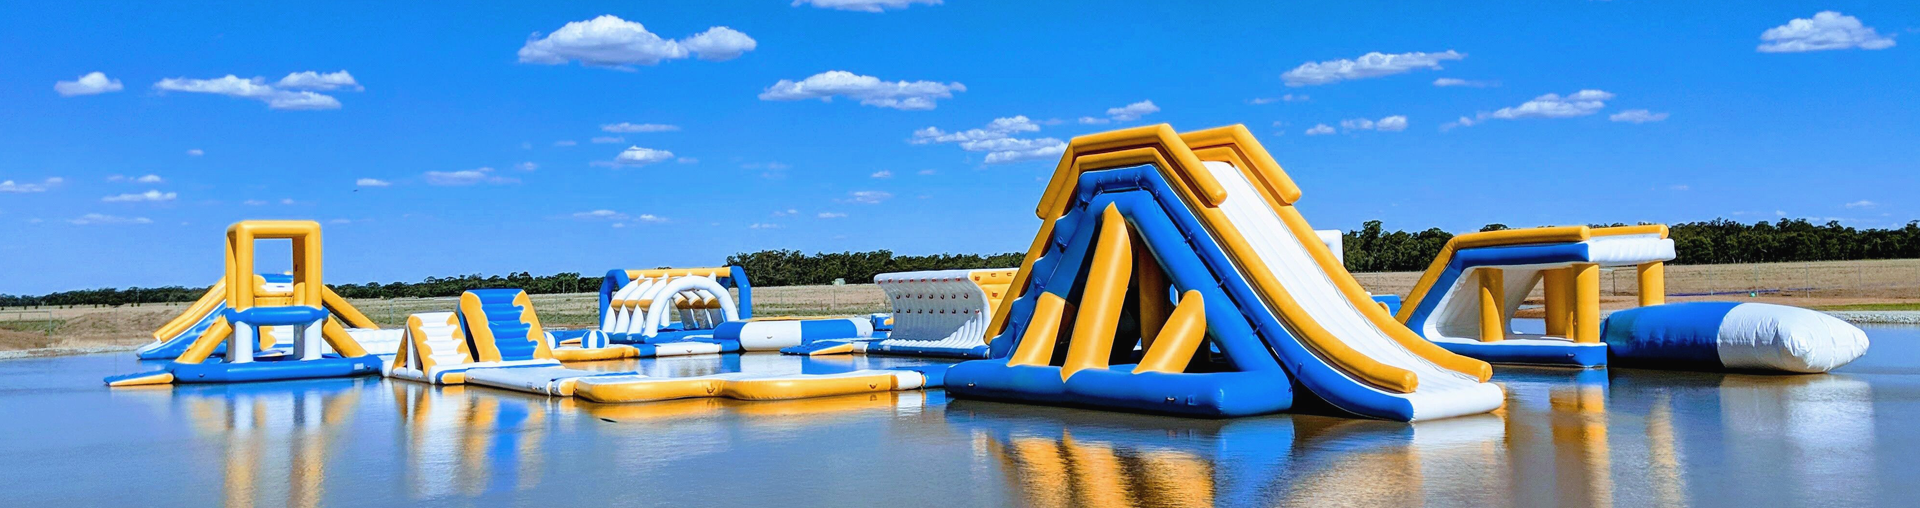 category-blow up water park-Bouncia-img-1